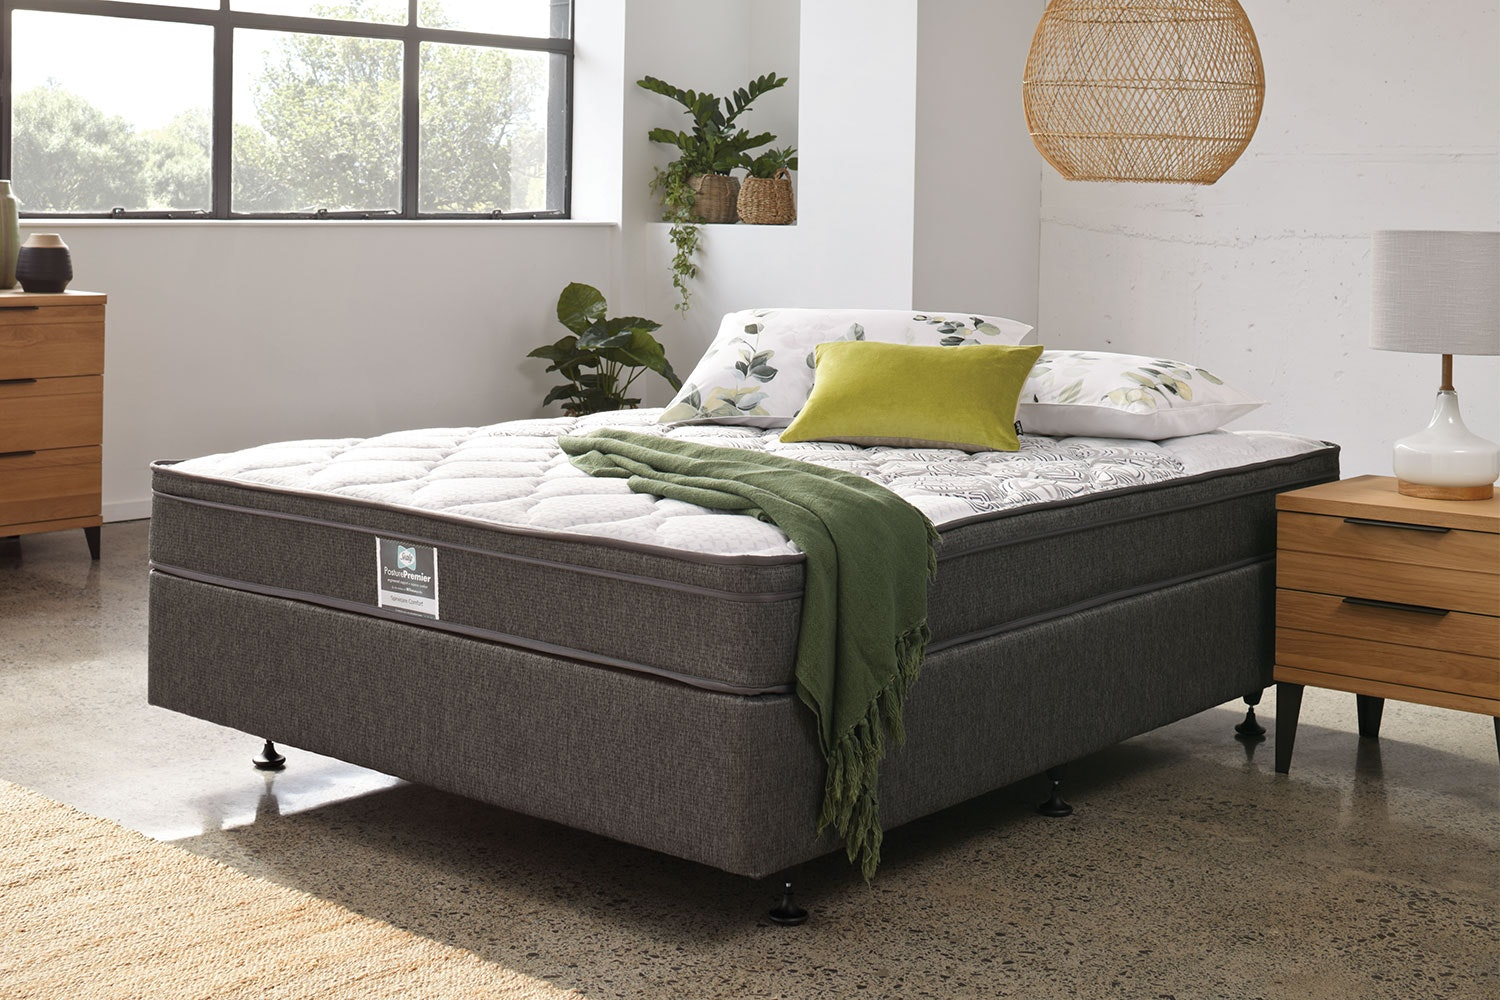 Spinecare Comfort Single Bed by Sealy